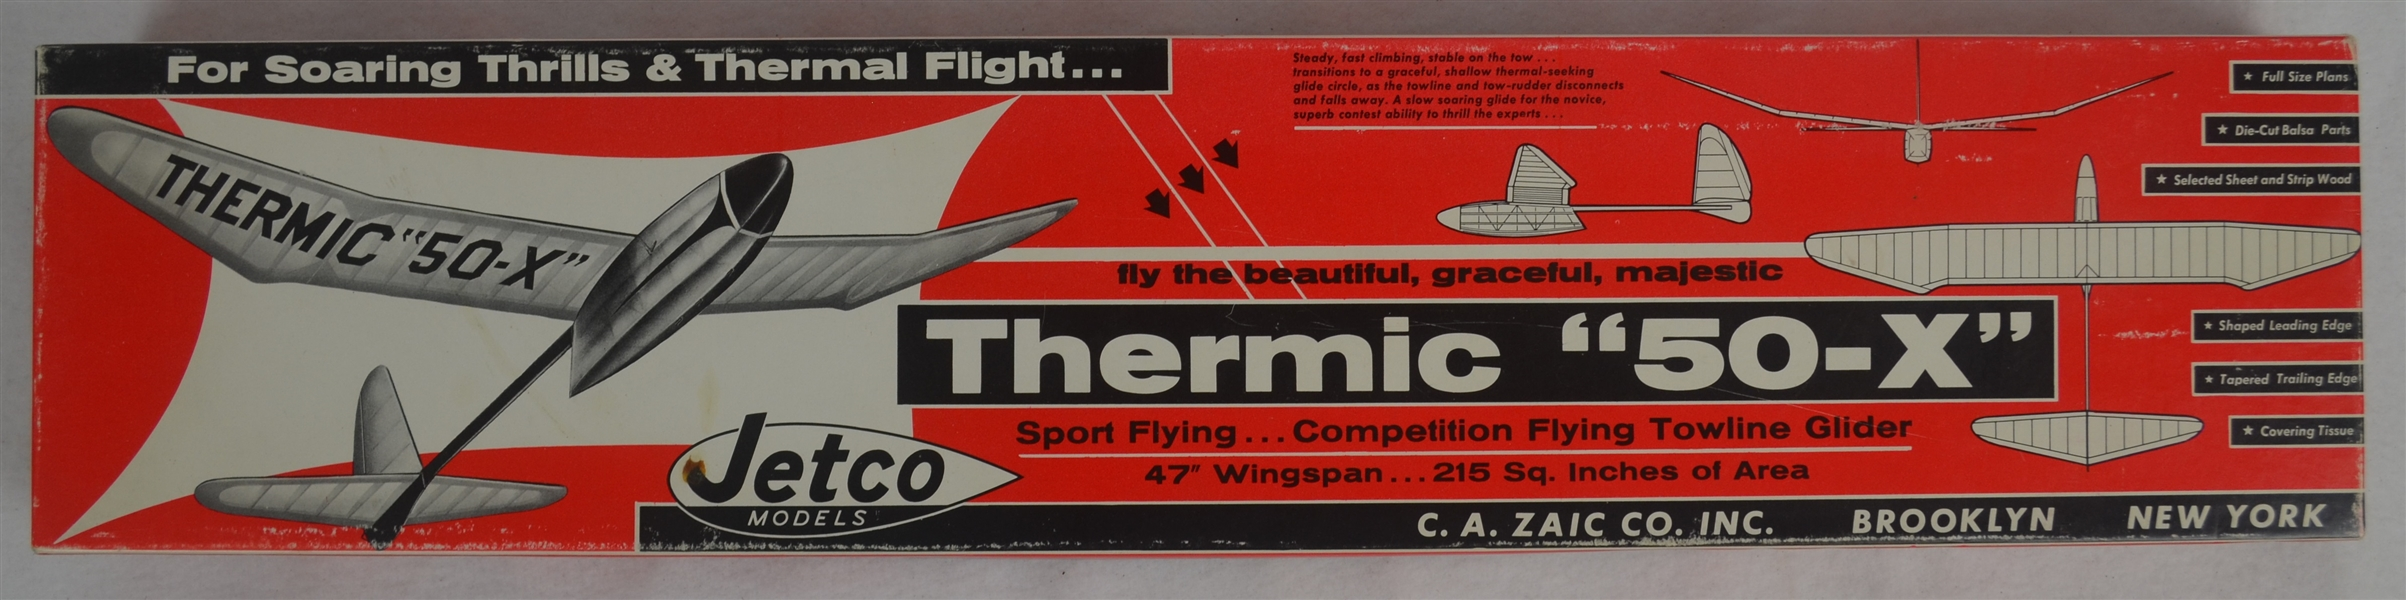 Vintage Jetco Thermic 50-X 1960's Airplane